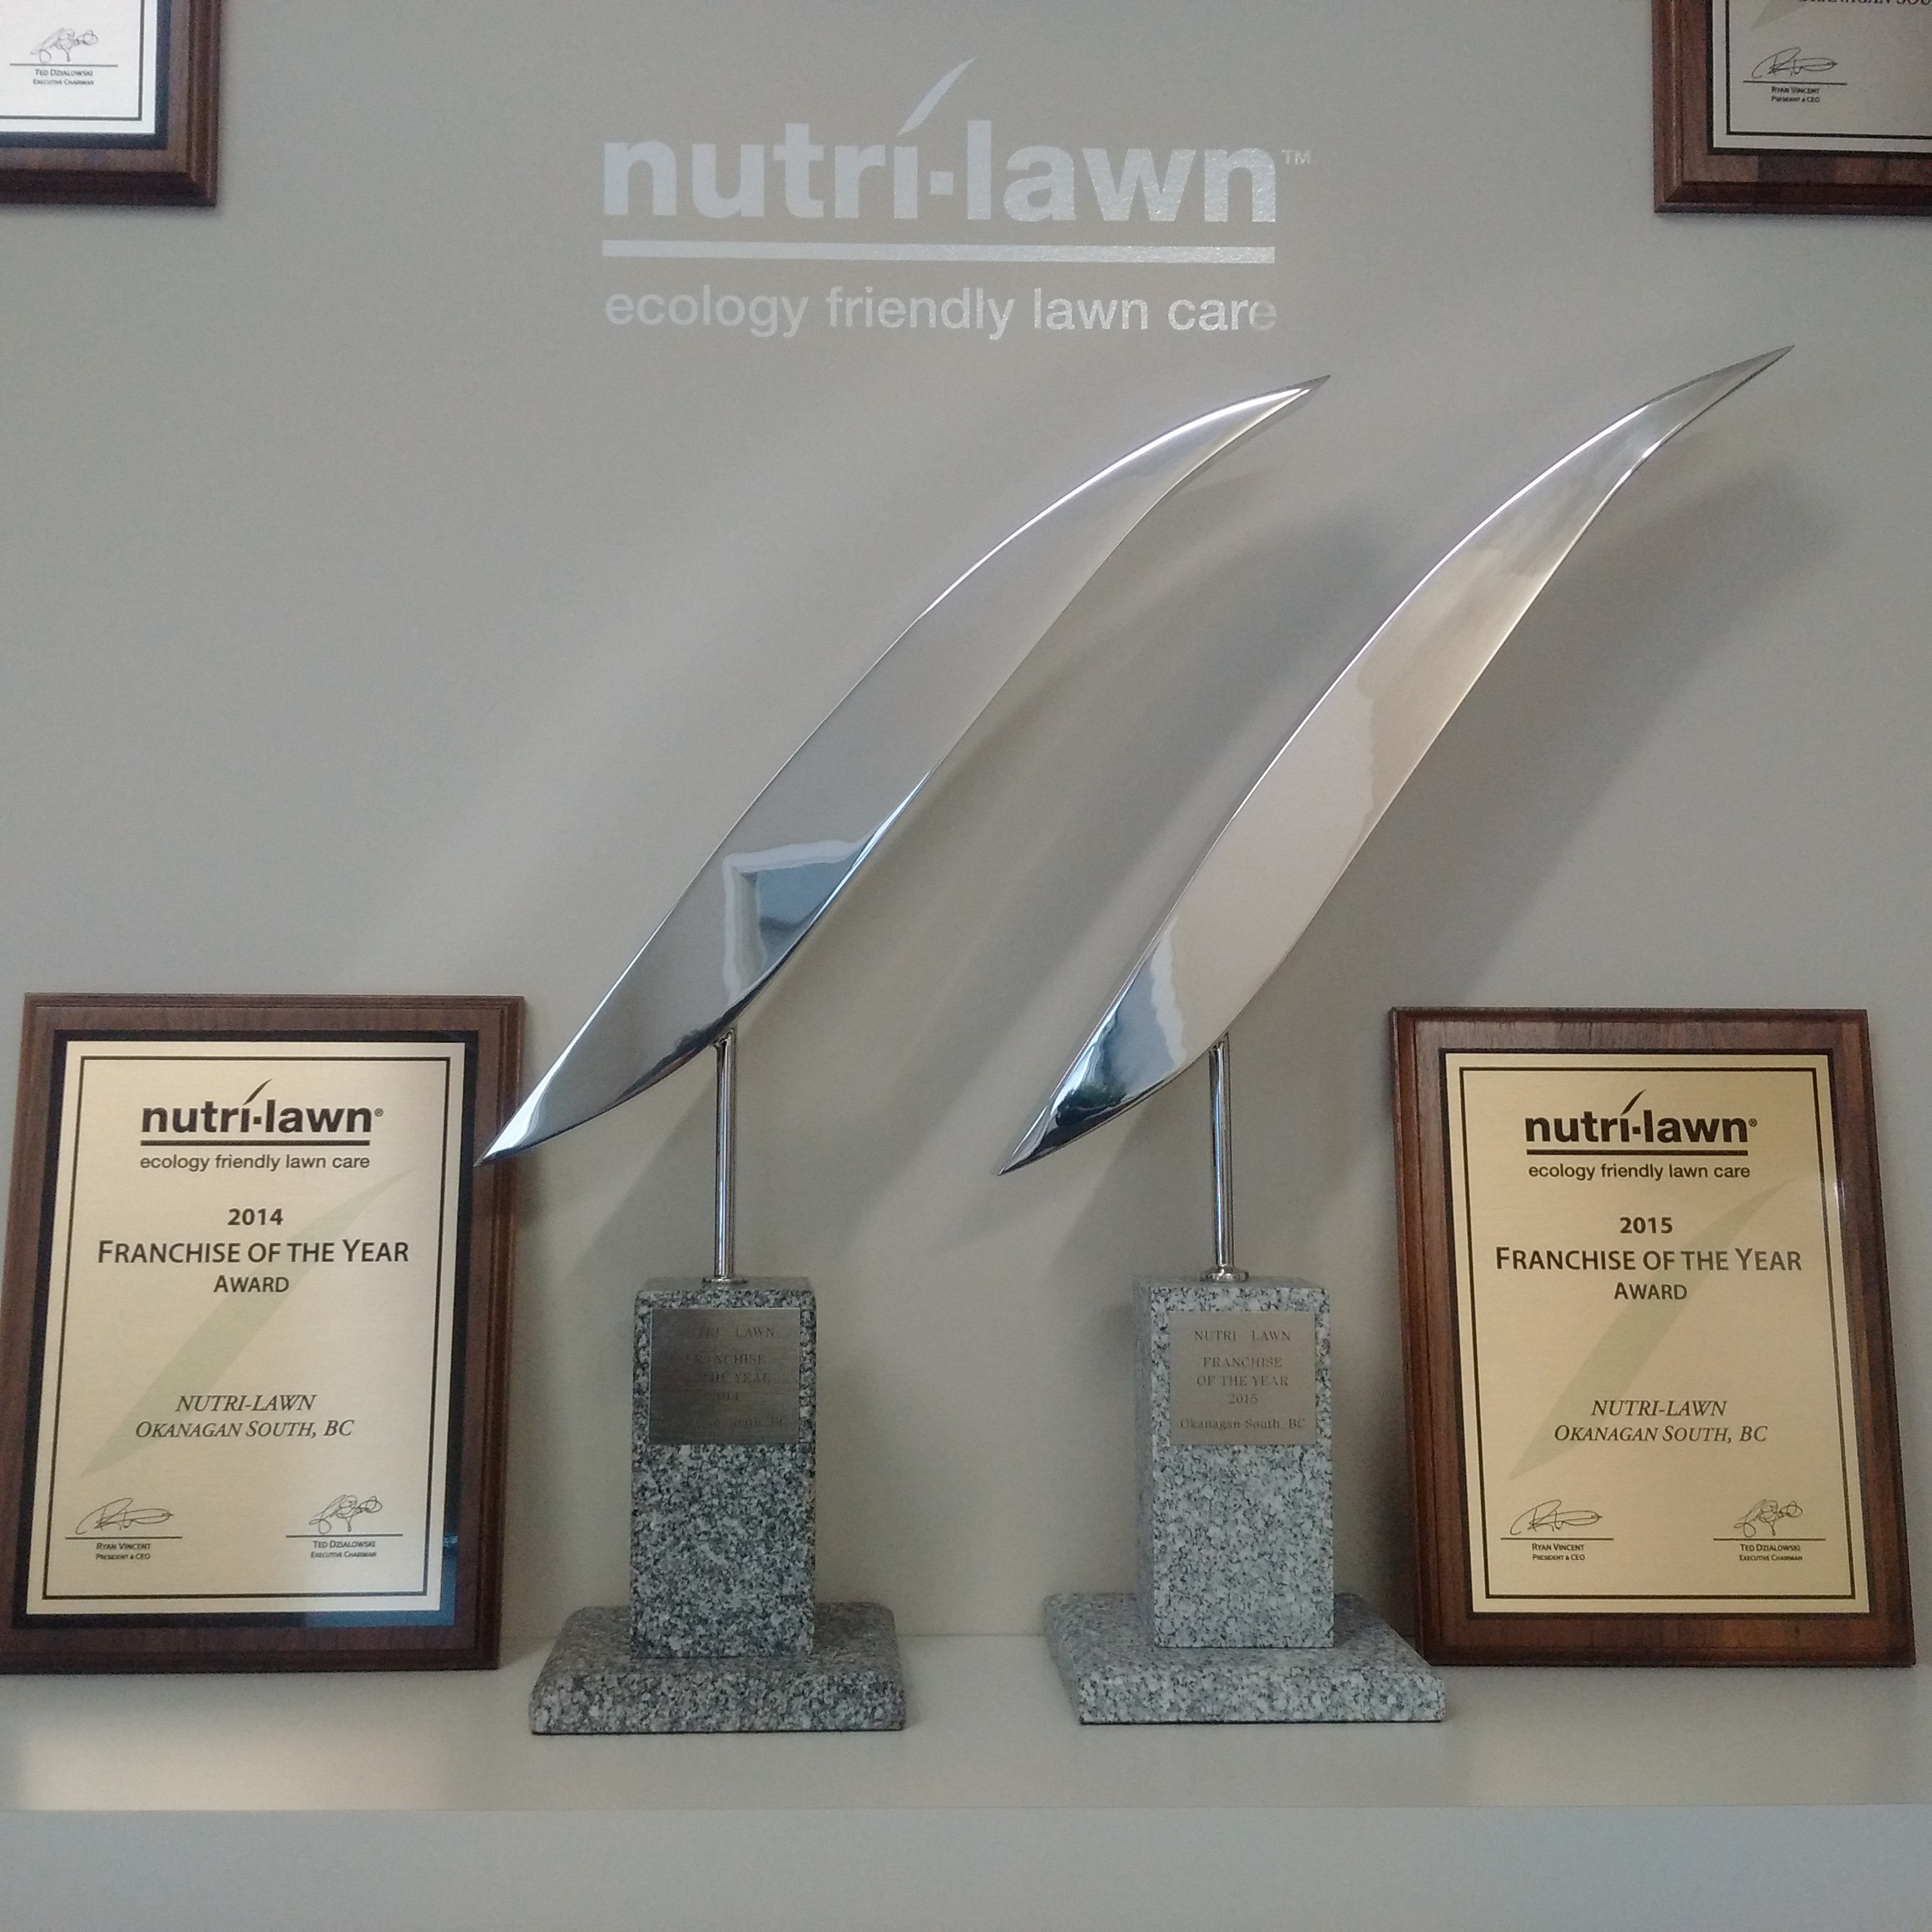 west-kelowna-nutrilawn-franchise-of-the-year-2014-2015.jpg